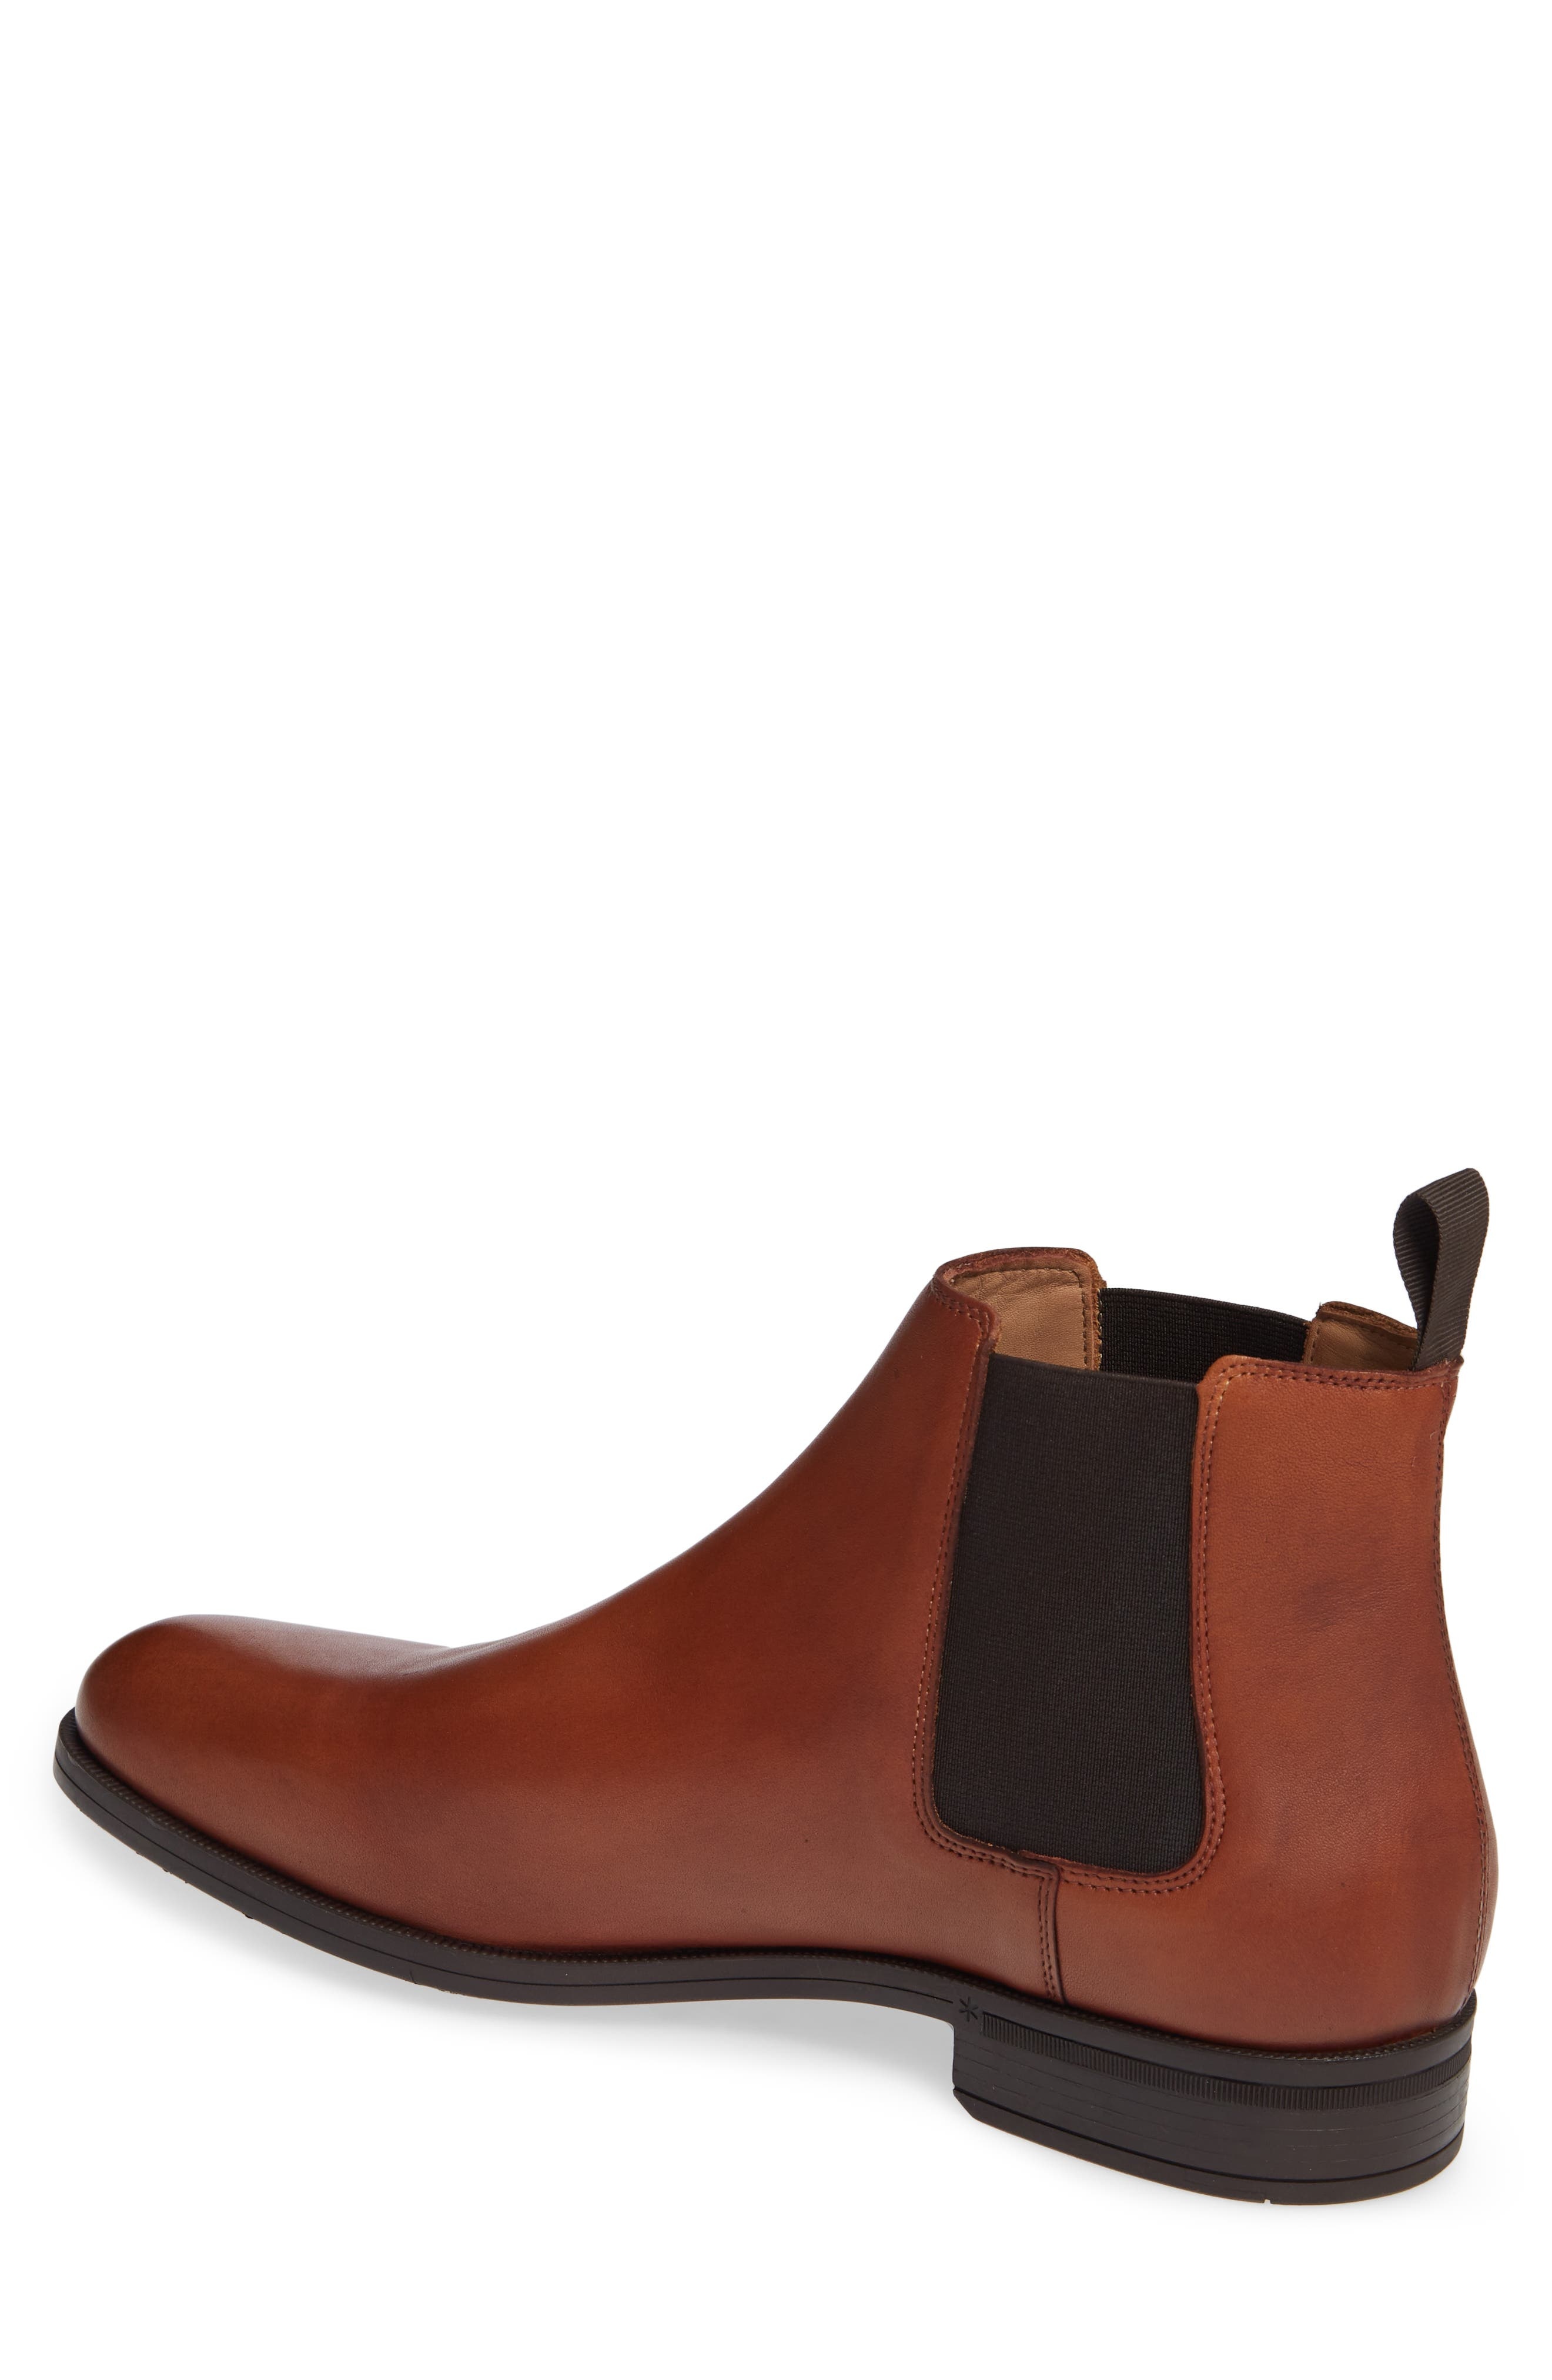 VINCE CAMUTO, Ivo Mid Chelsea Boot, Alternate thumbnail 2, color, COGNAC LEATHER